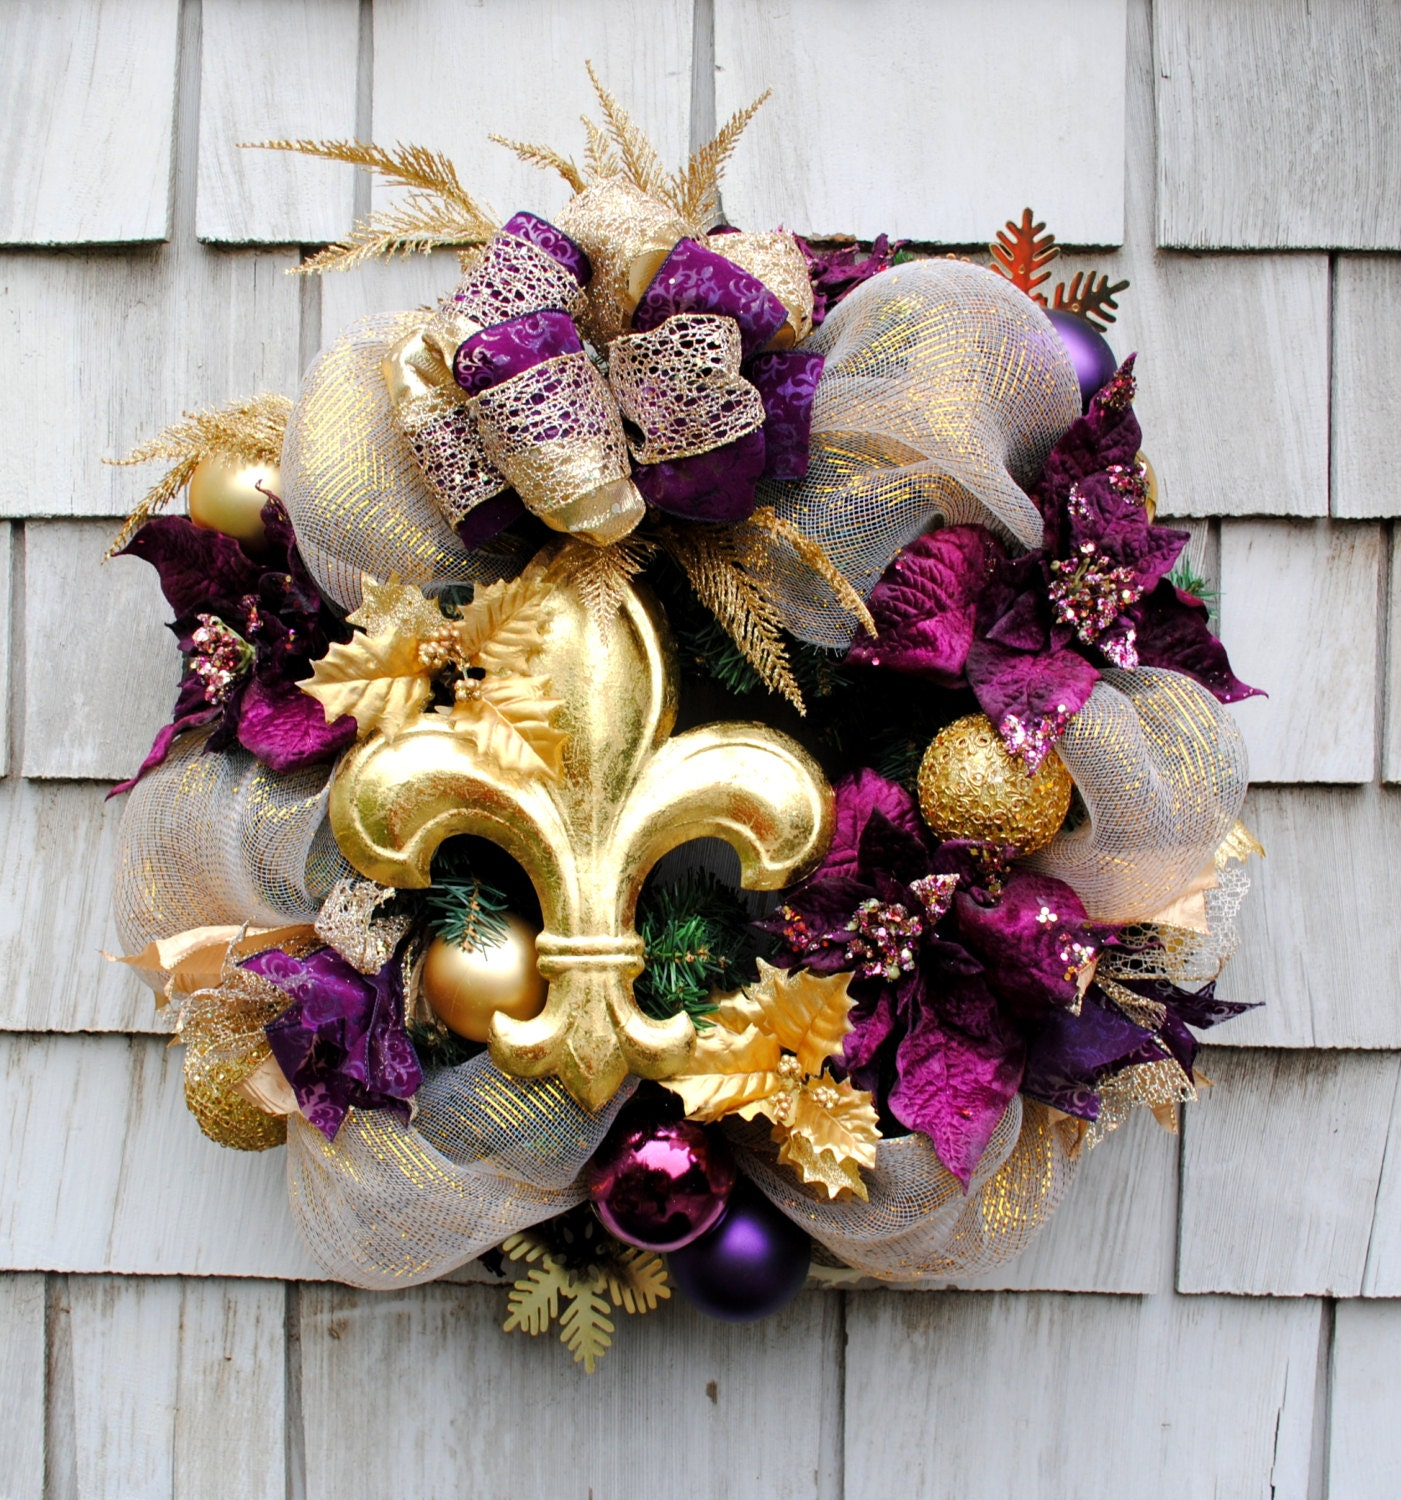 Christmas Wreath for the Door in an Elegant Gold and Purple with a XL Gold Fleur De Lis